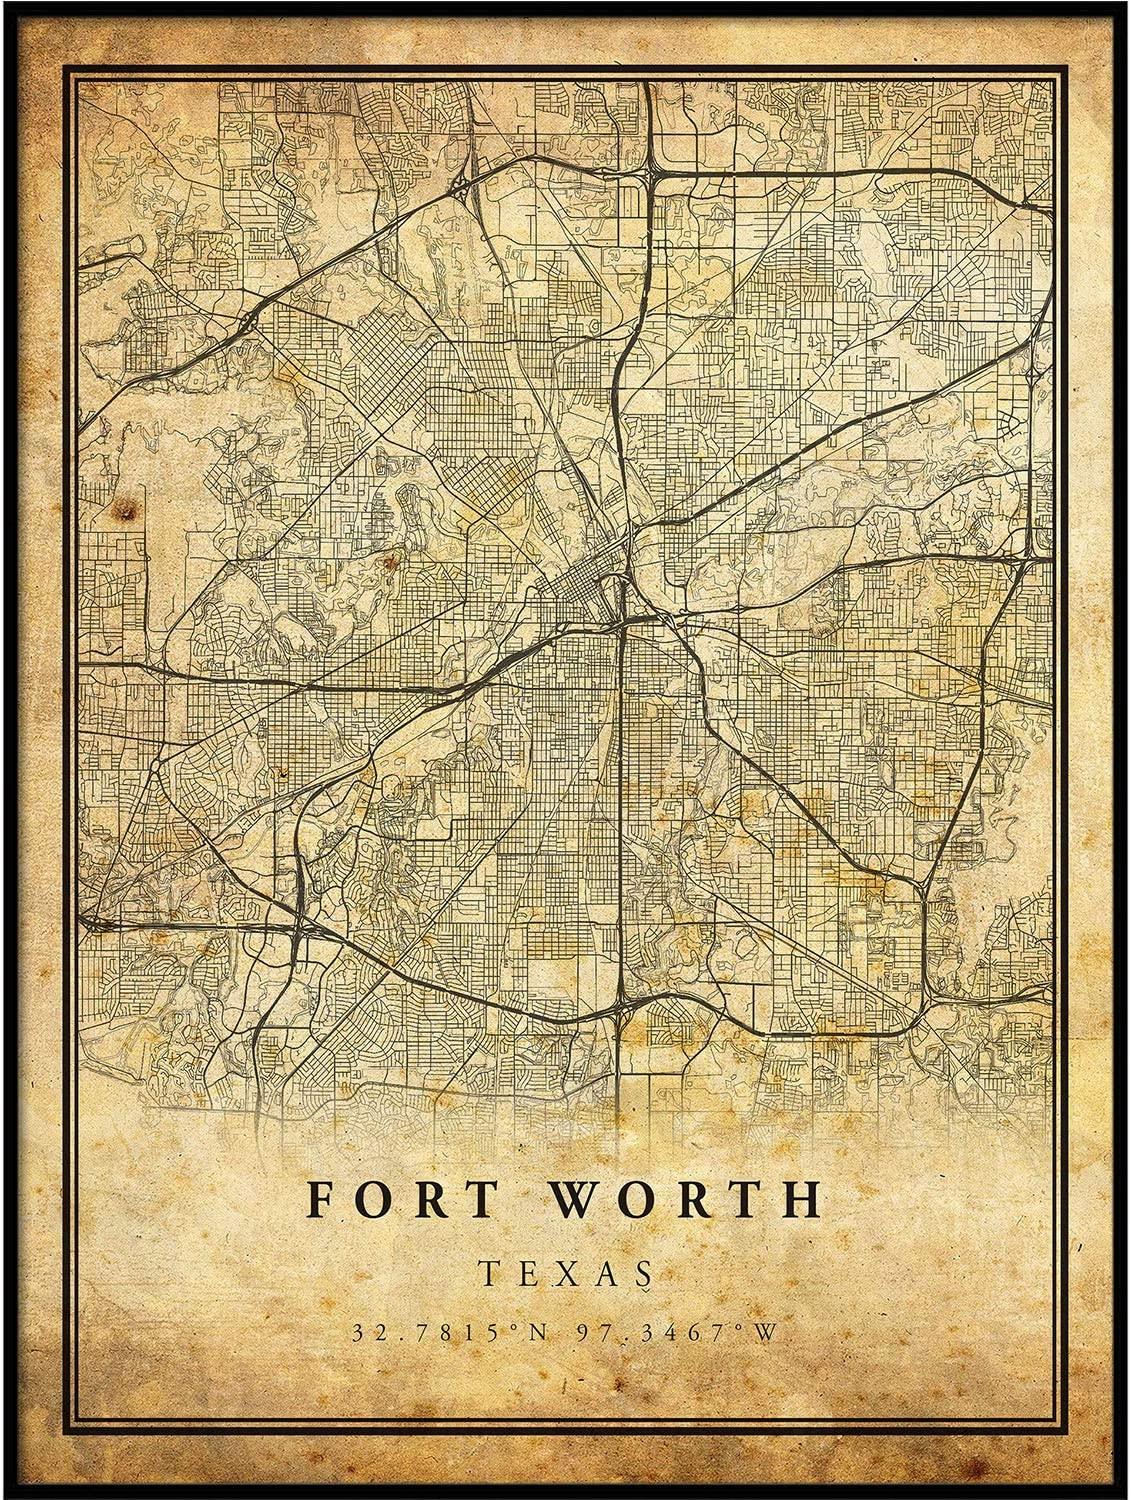 Fort Worth map Vintage Style Poster Print | Old City Artwork Prints | Antique Style Home Decor | Texas Wall Art Gift | Vintage map Reprint 24x36